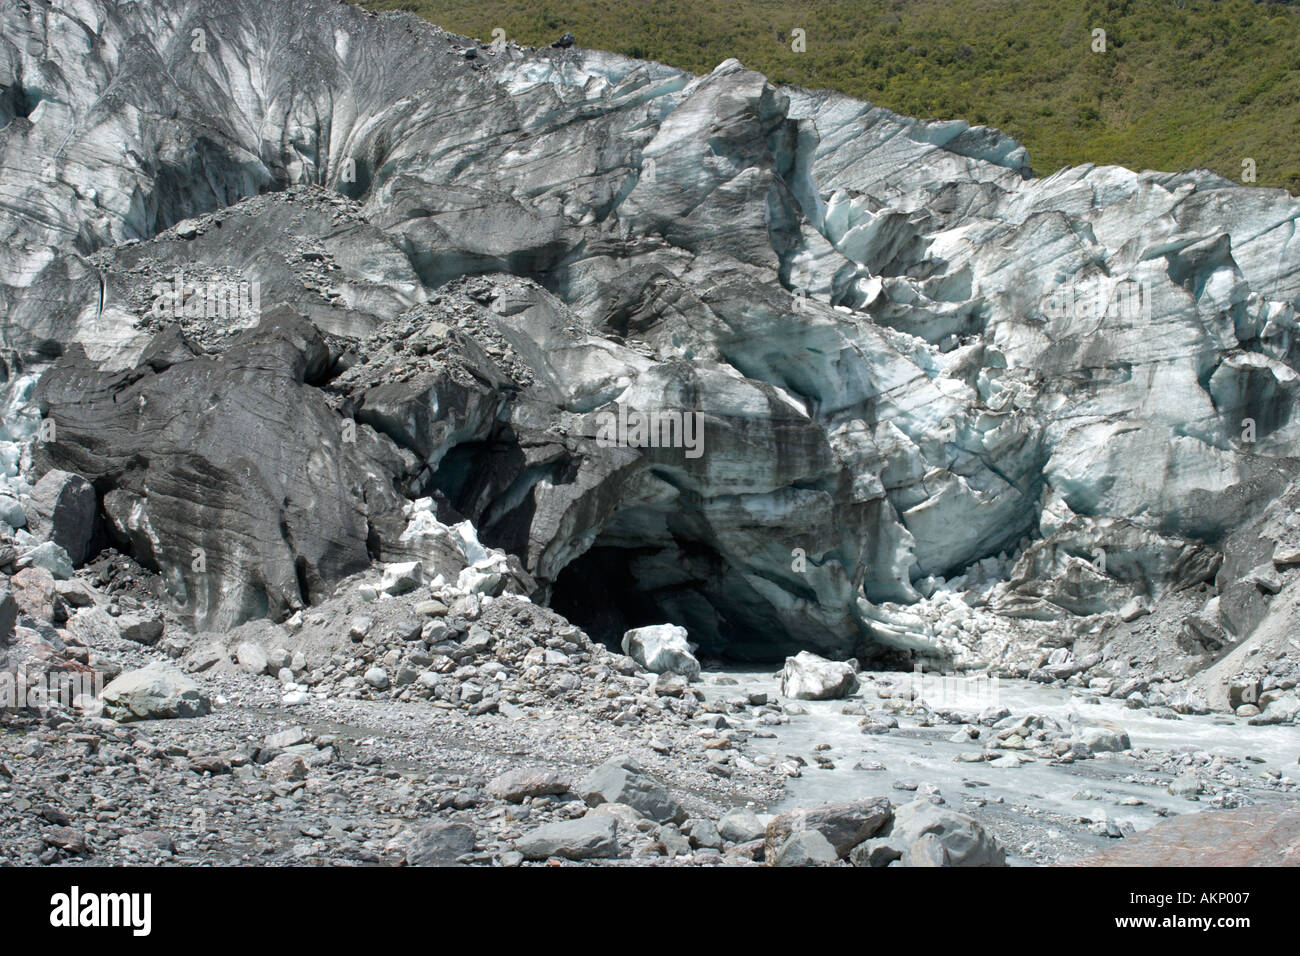 The terminal (foot) of Fox Glacier, South Island, New Zealand - Stock Image